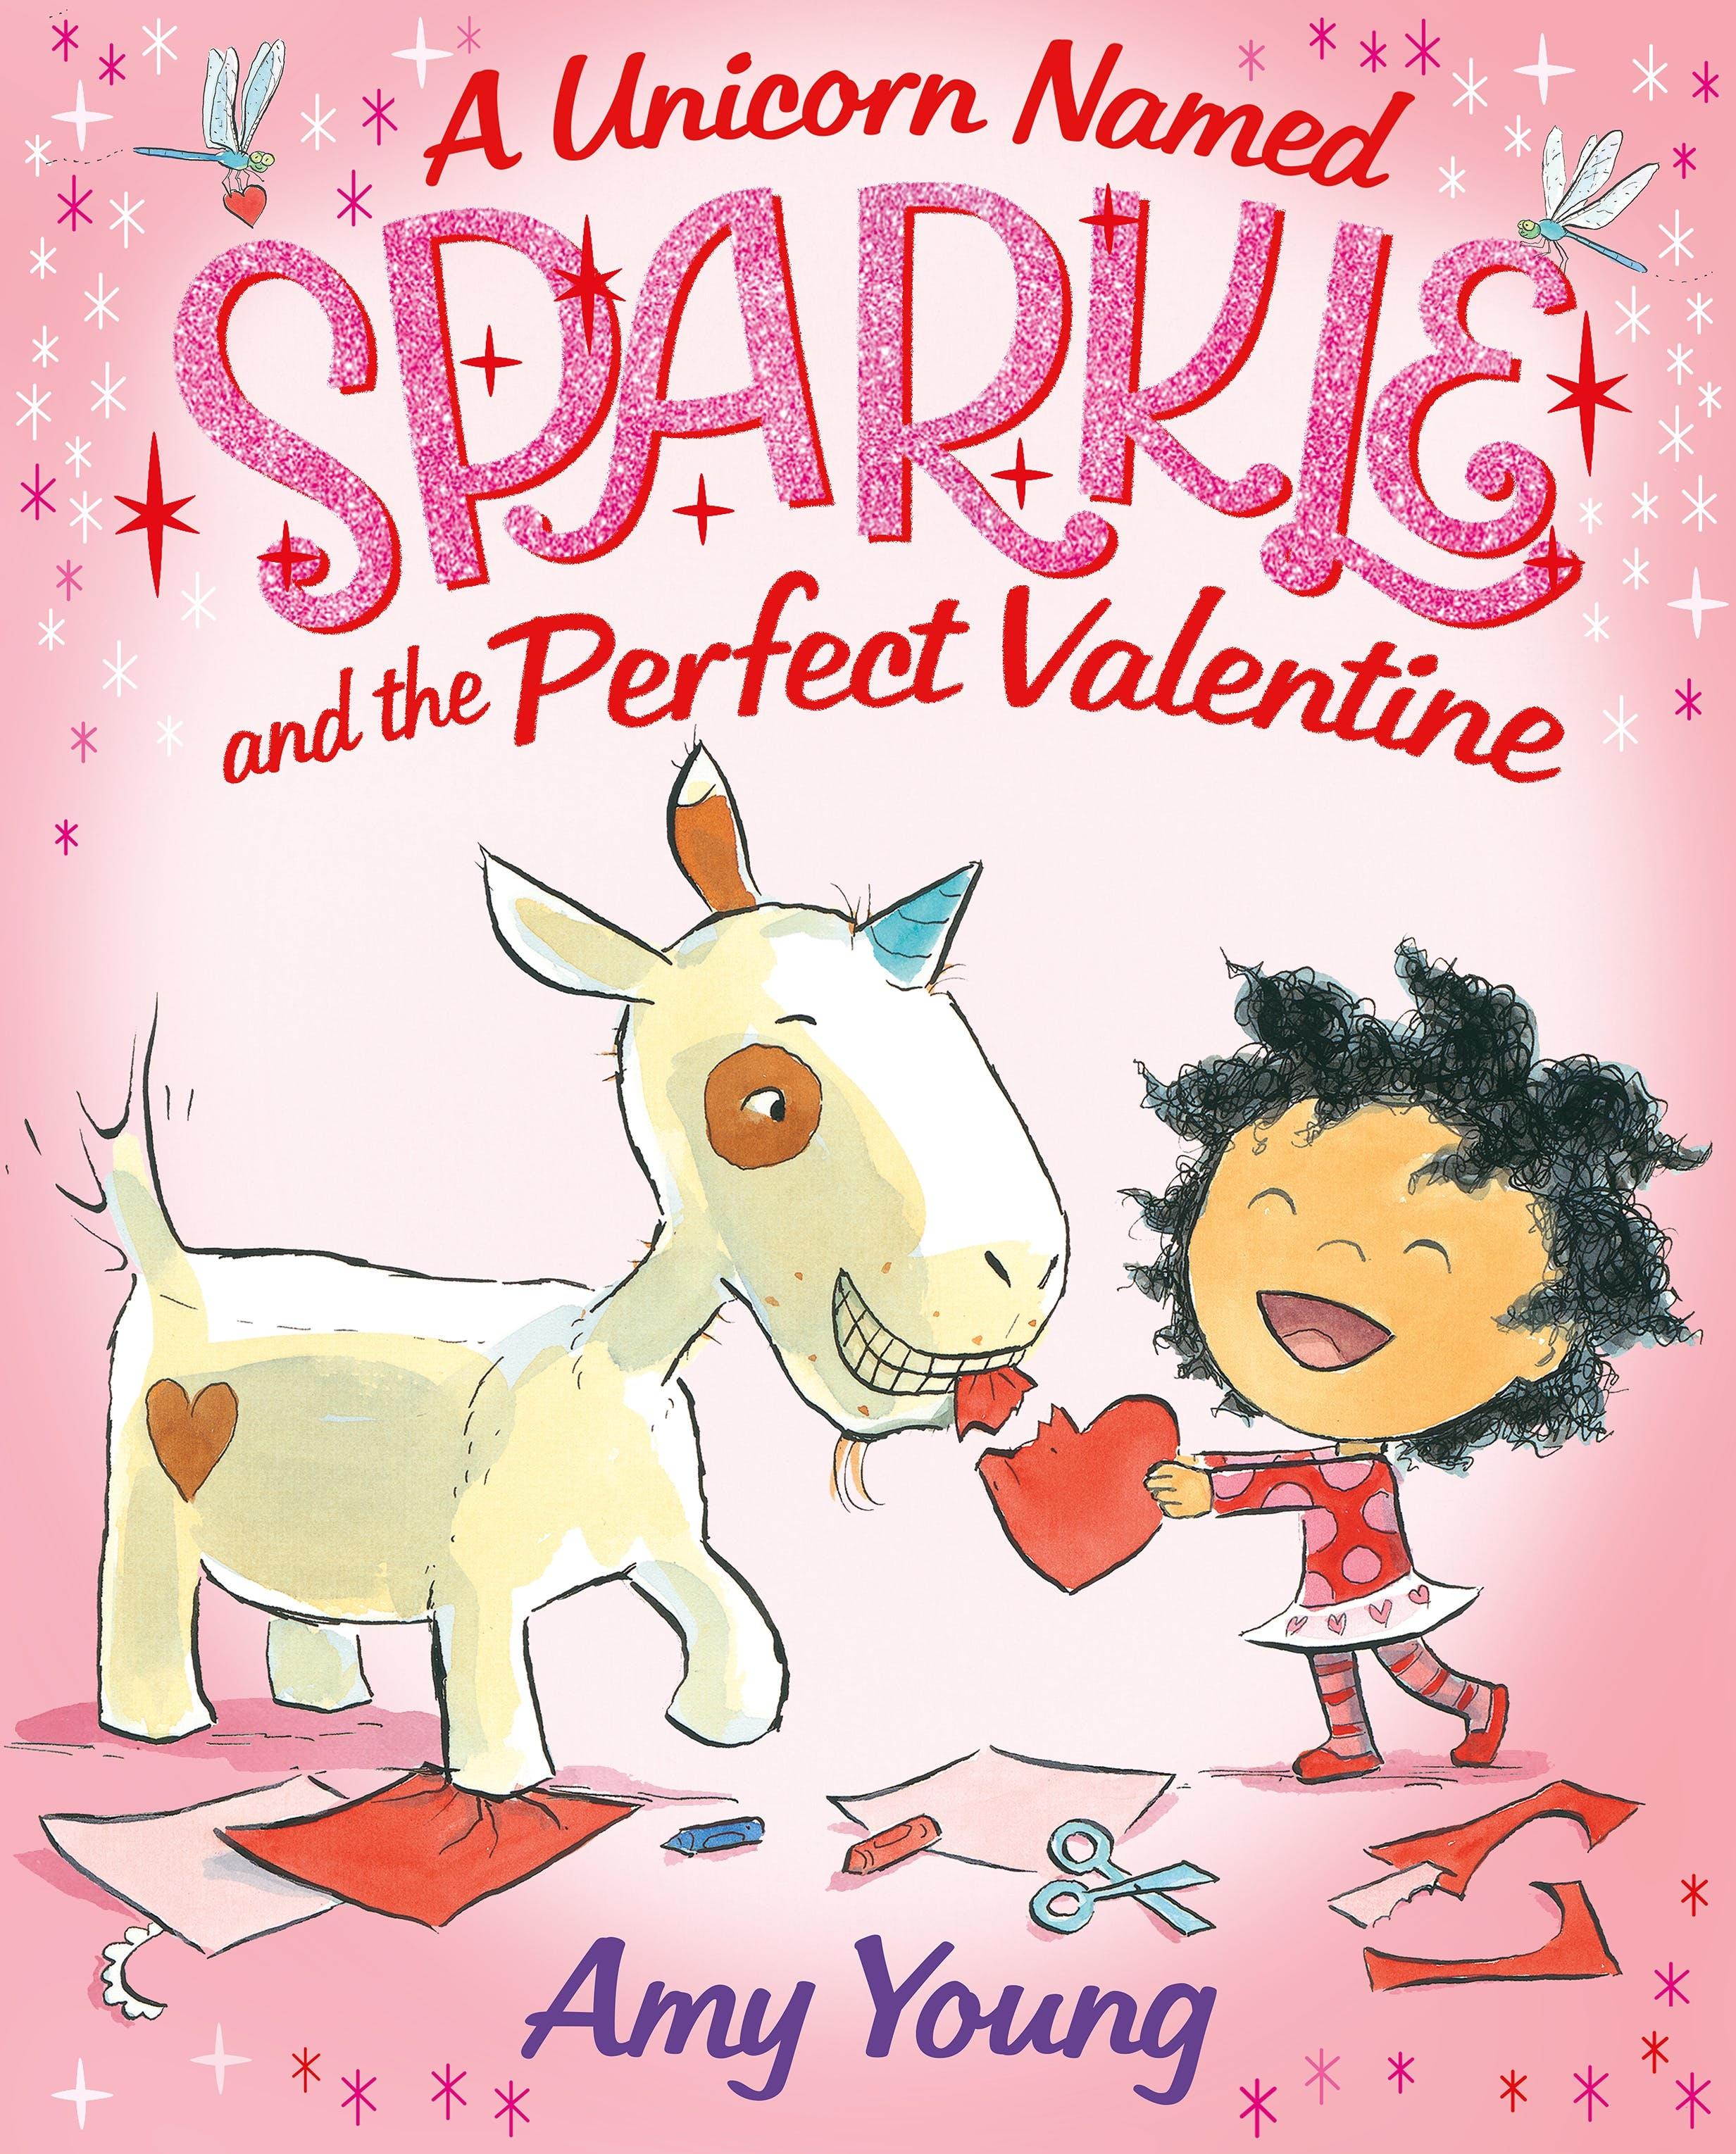 Image of A Unicorn Named Sparkle and the Perfect Valentine